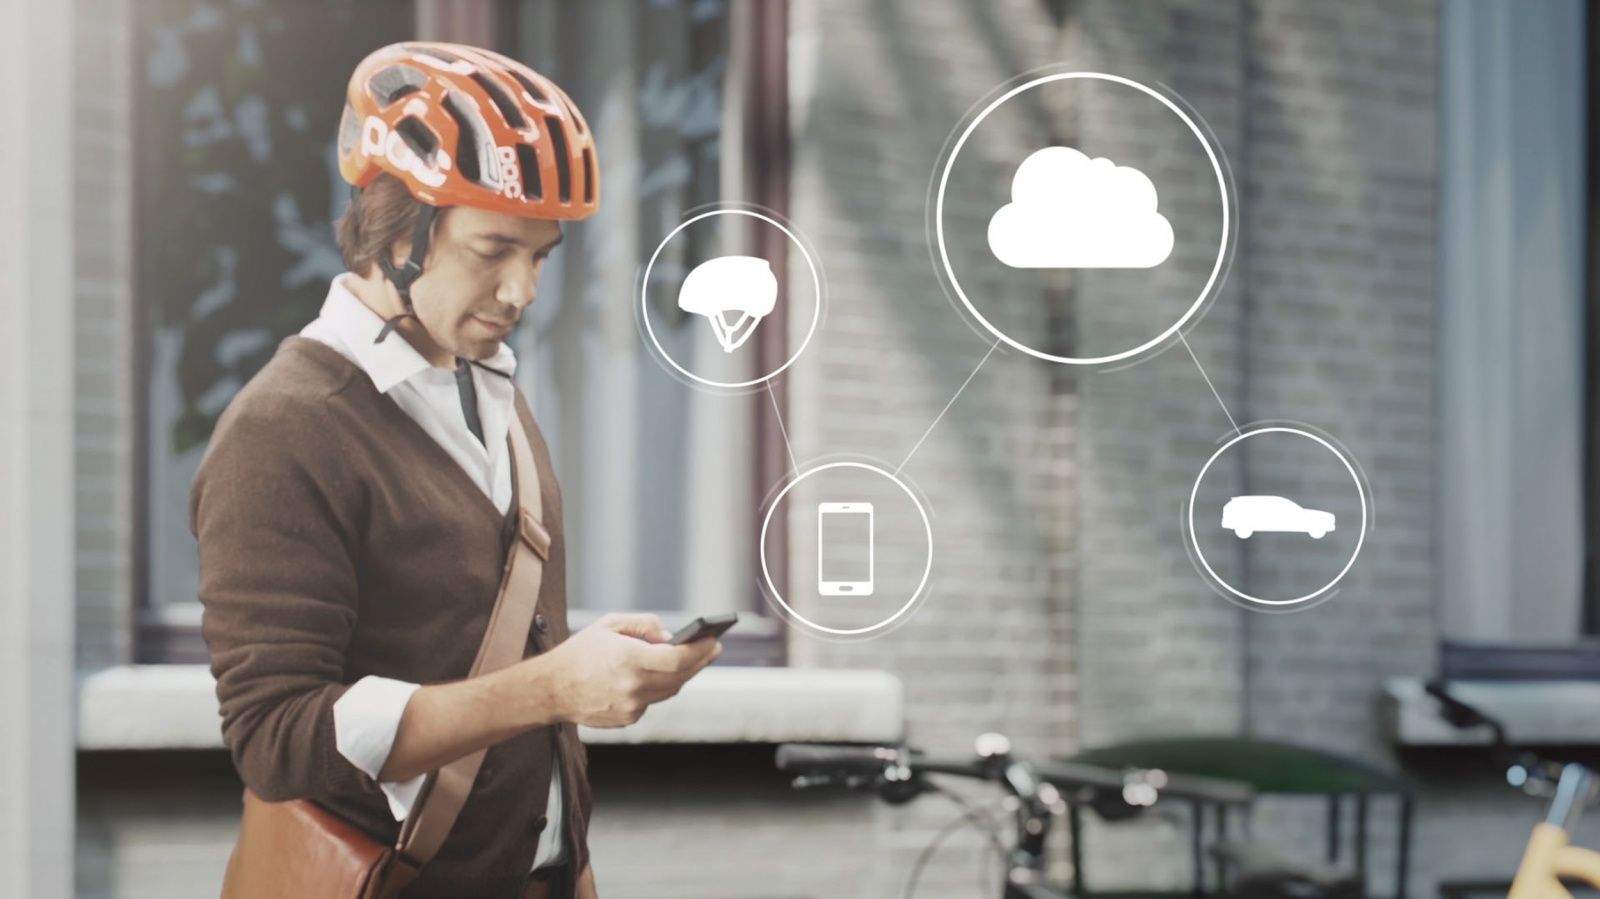 Swedish companies Volvo and POC have developed cloud-based safety technology that will alert cyclists and motorists when a collision is possible. (Photo from Volvo)